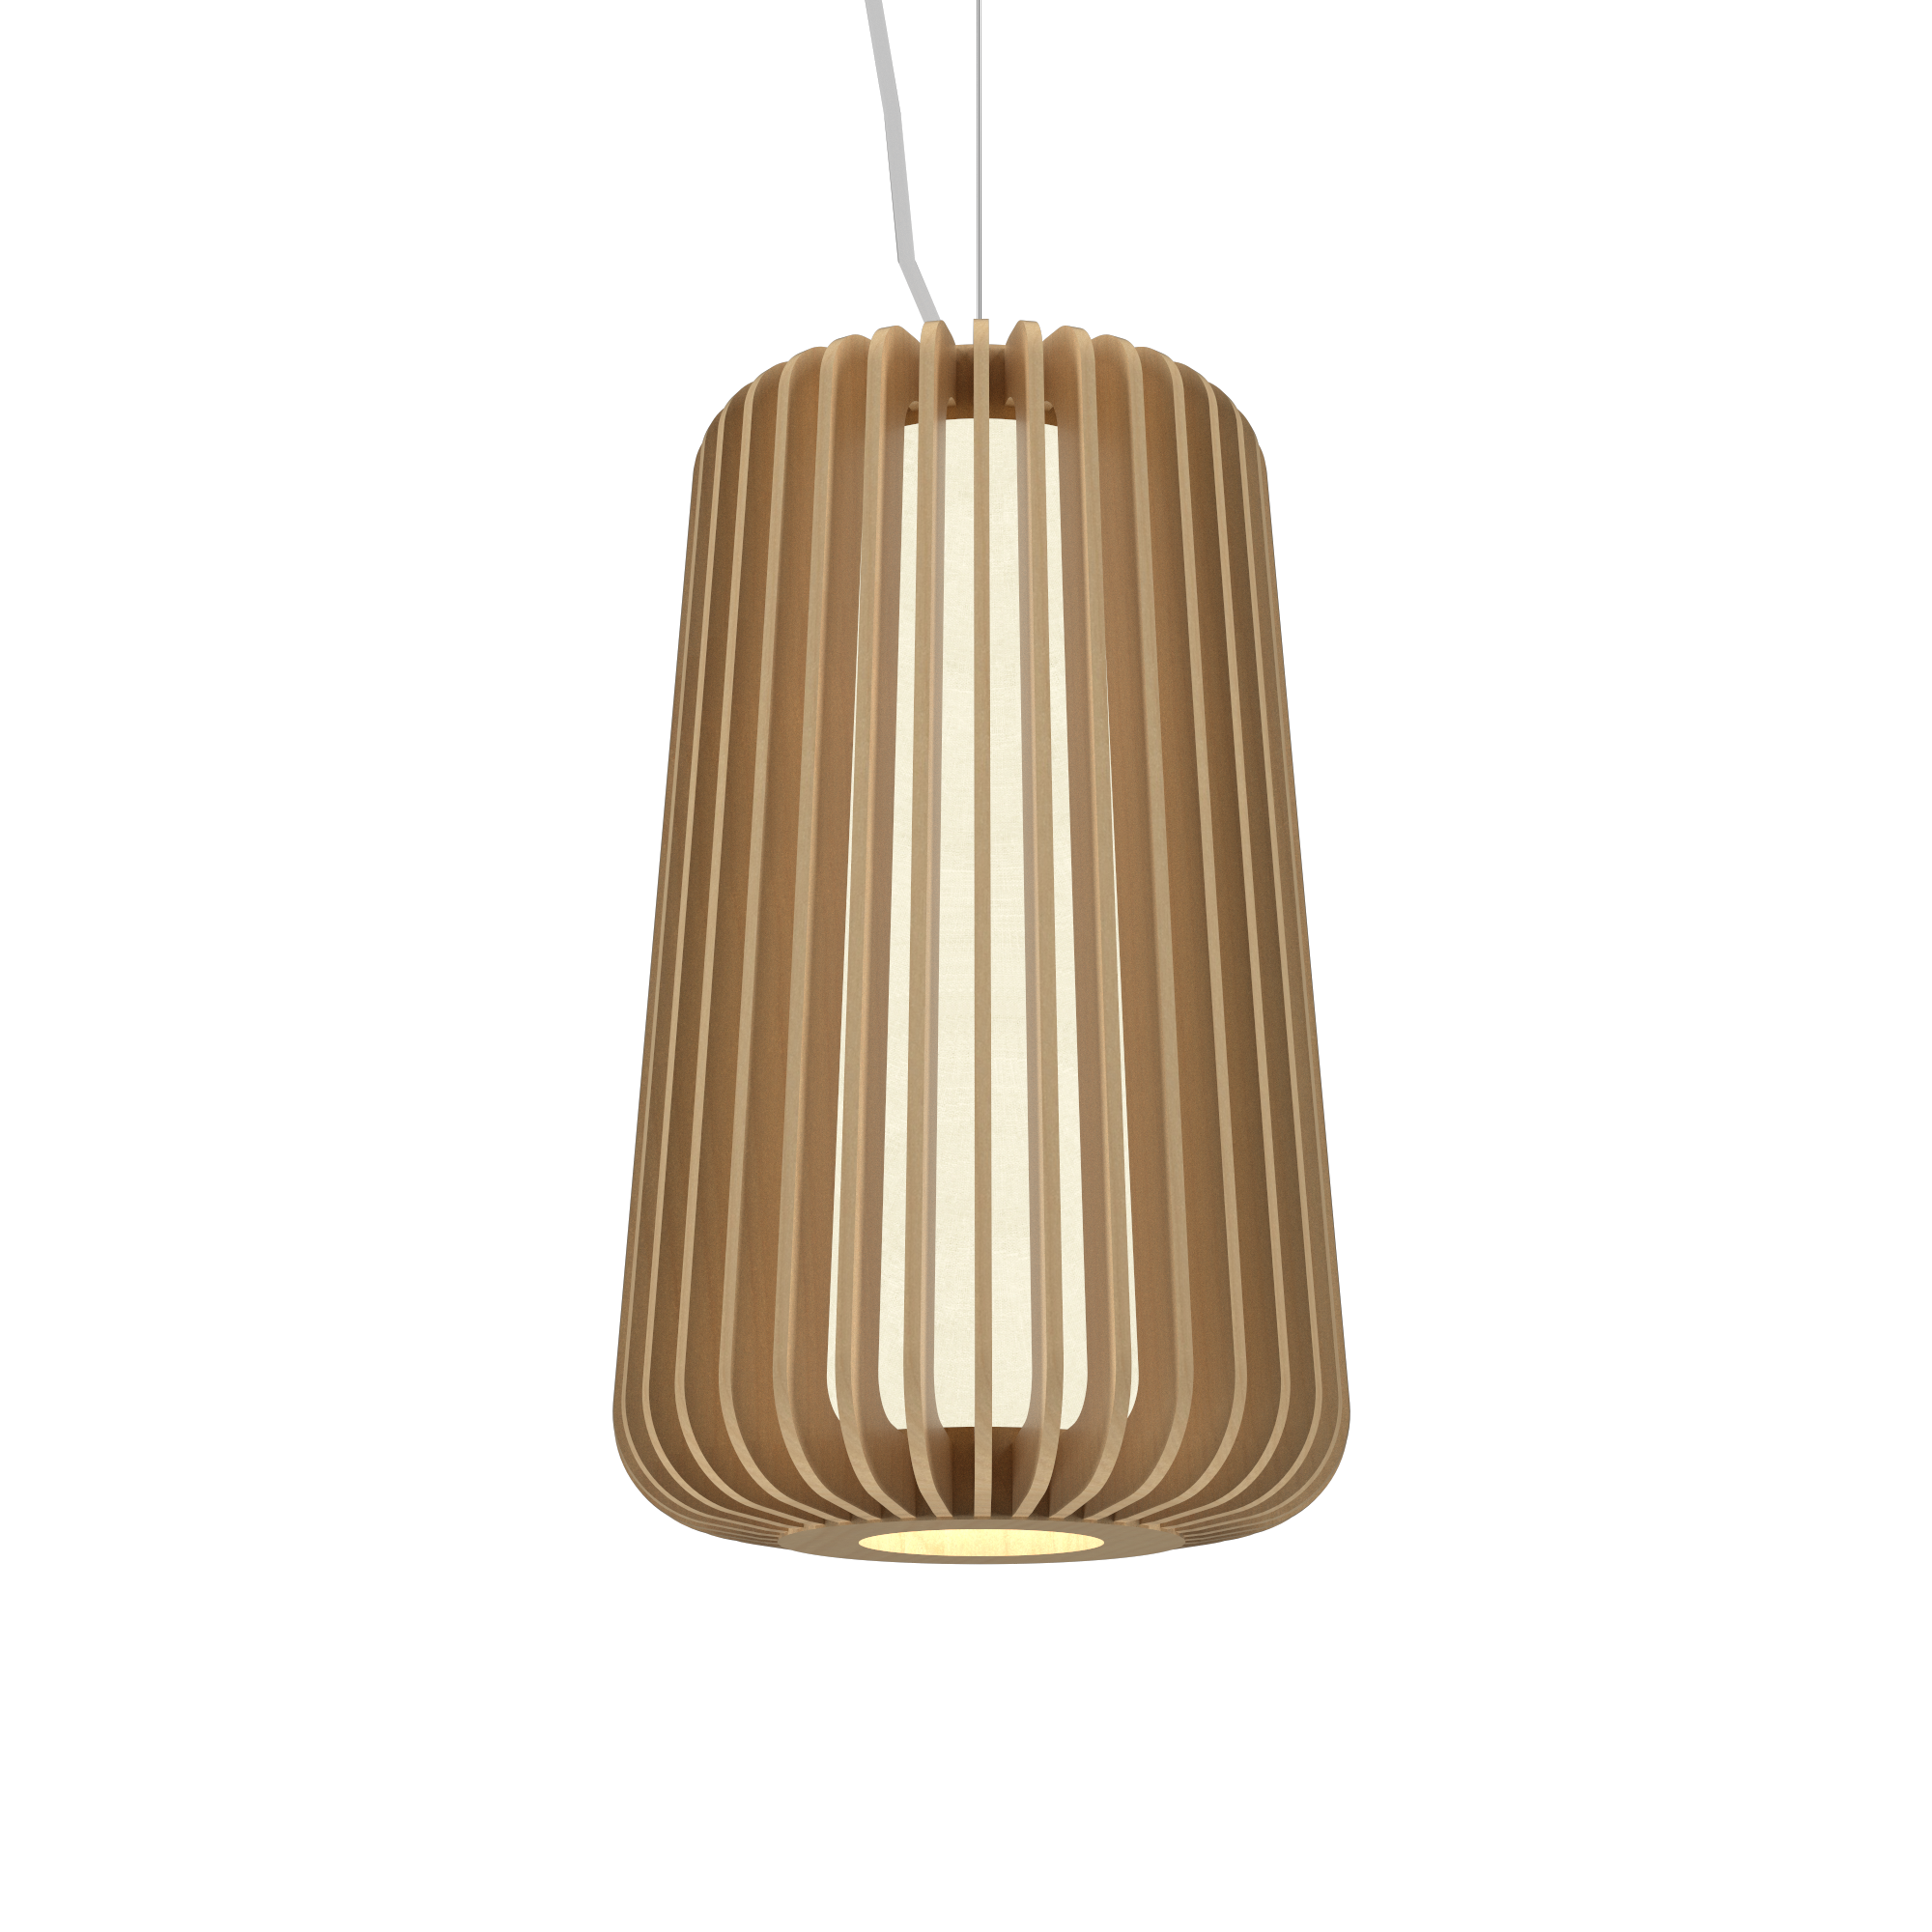 Pendant Lamp Accord Stecche Di Legno 1427 - Stecche Di Legno Line Accord Lighting | 34. Maple